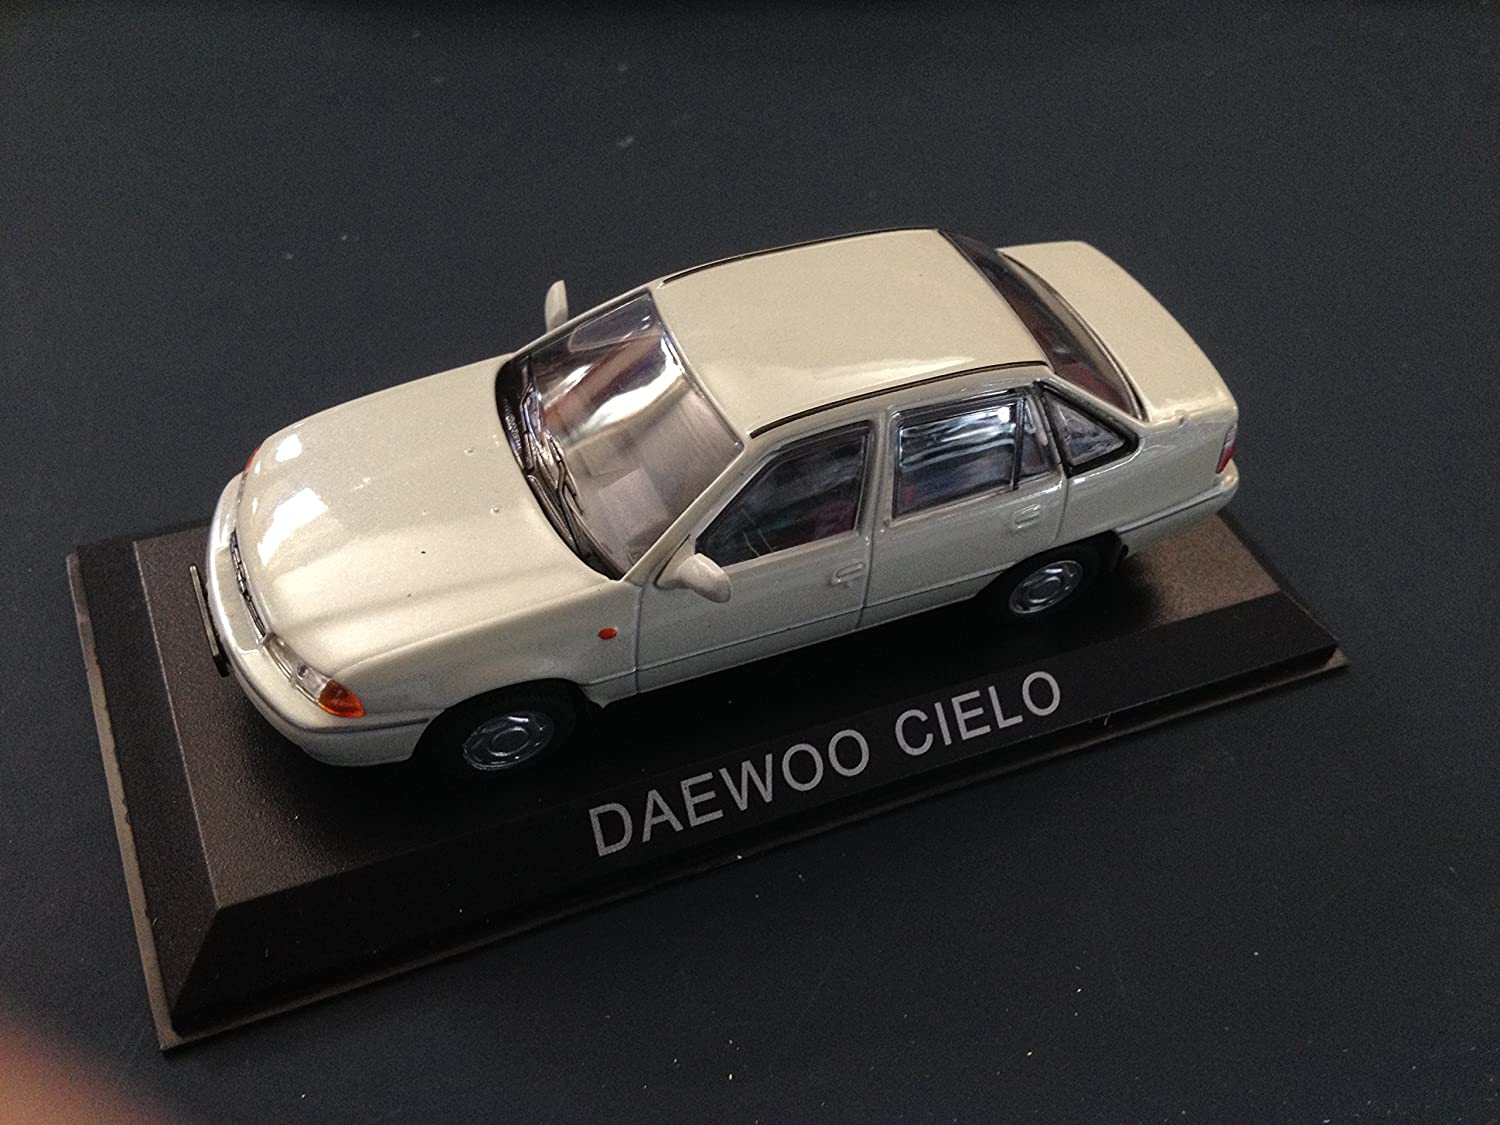 Générique 1:43 East Car : Daewoo Cielo Collectible Car 1/43 IXO Legendary Car B27